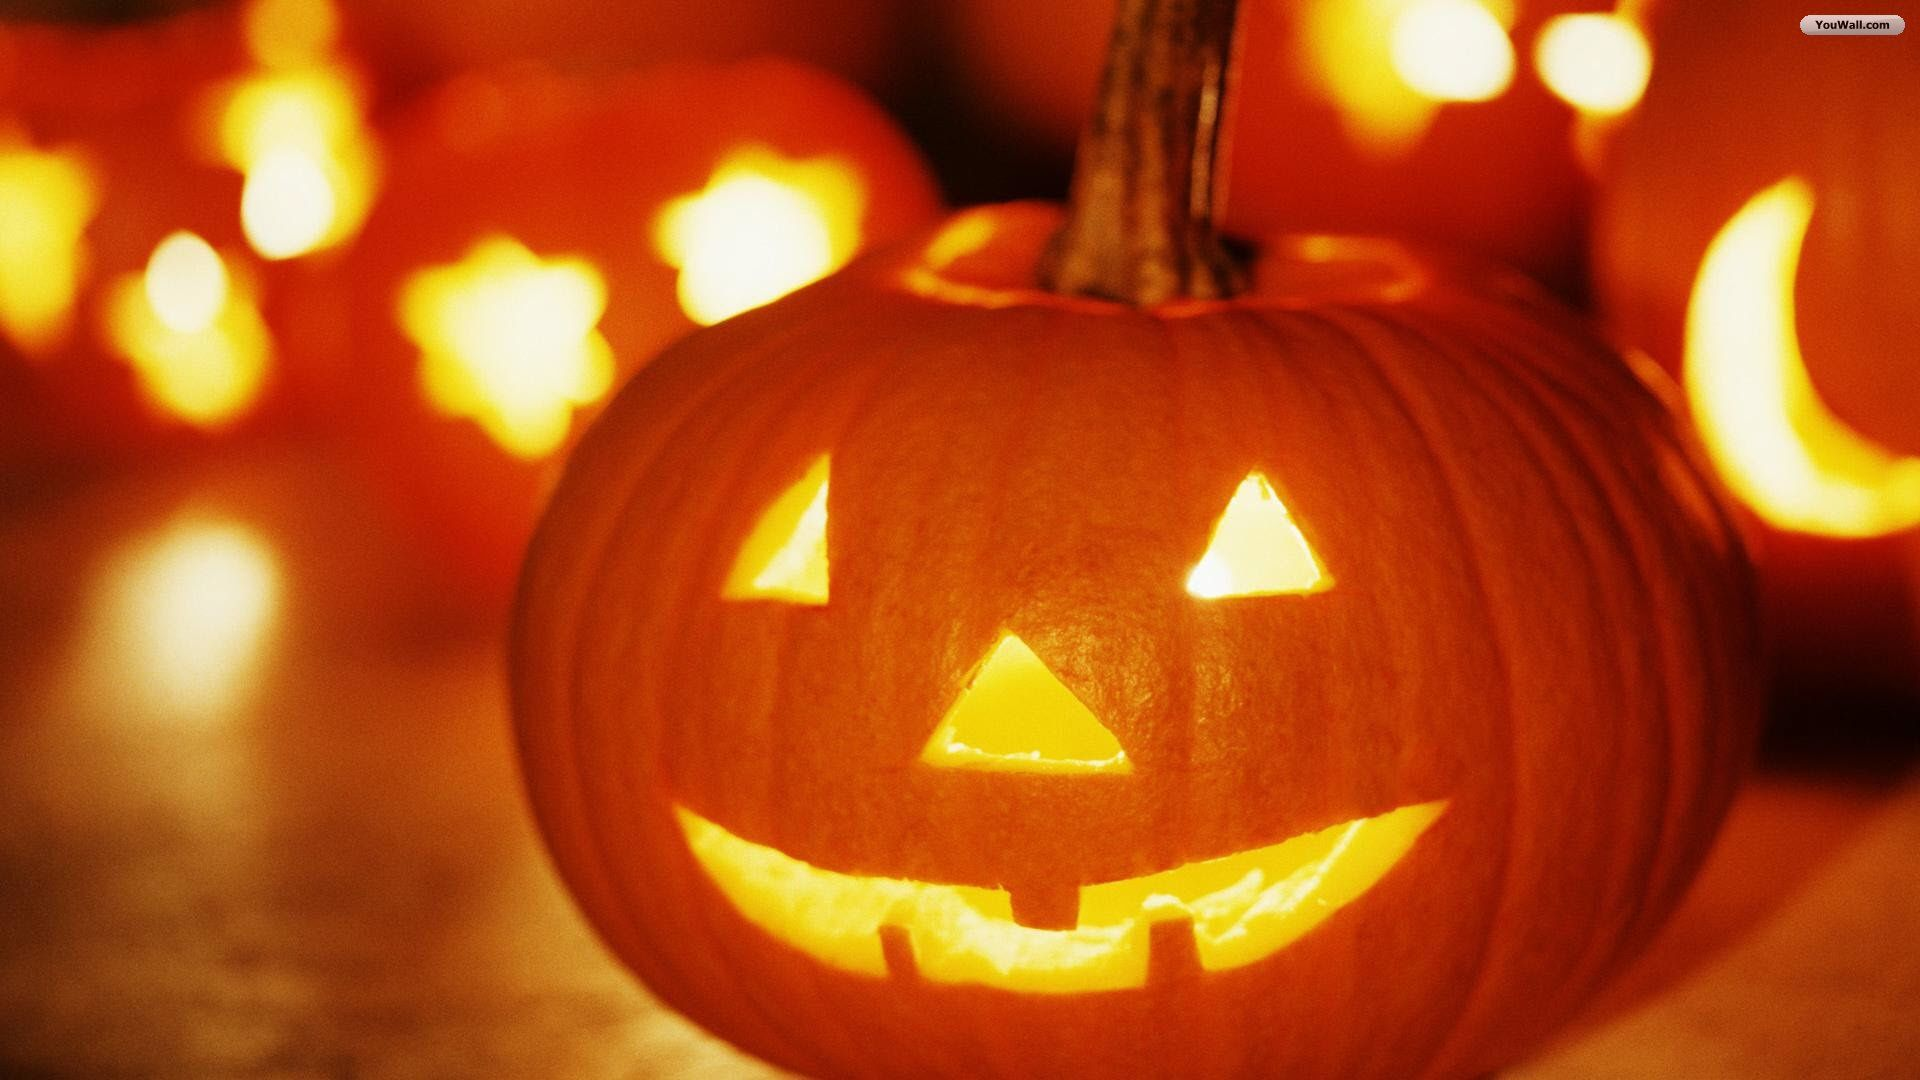 Pumpkin Halloween Wallpaper